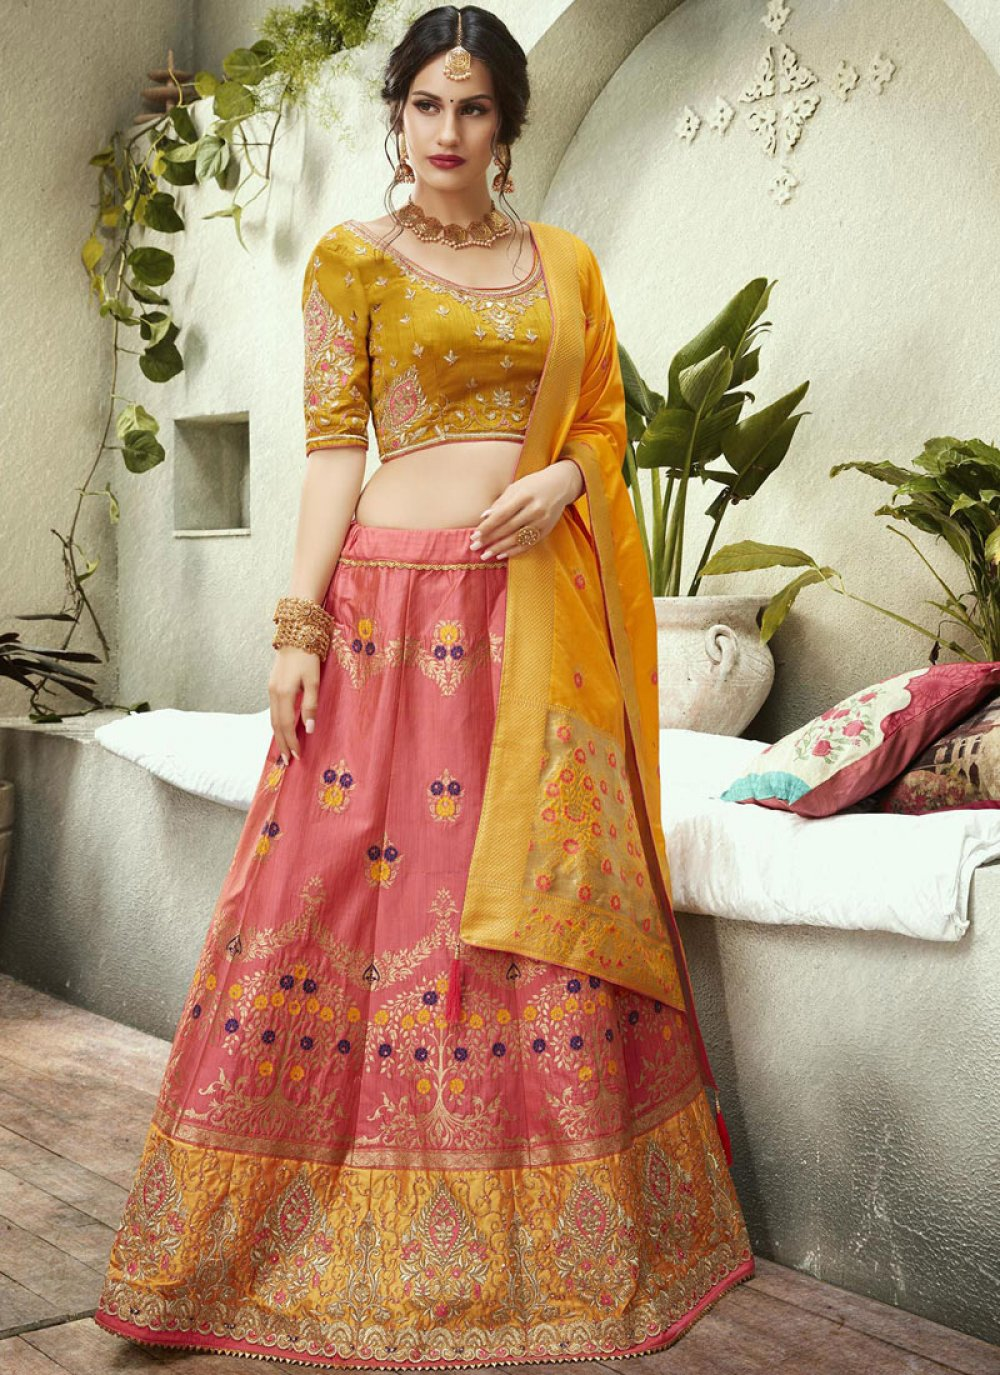 Jacquard Silk Pink and Yellow Lehenga Choli